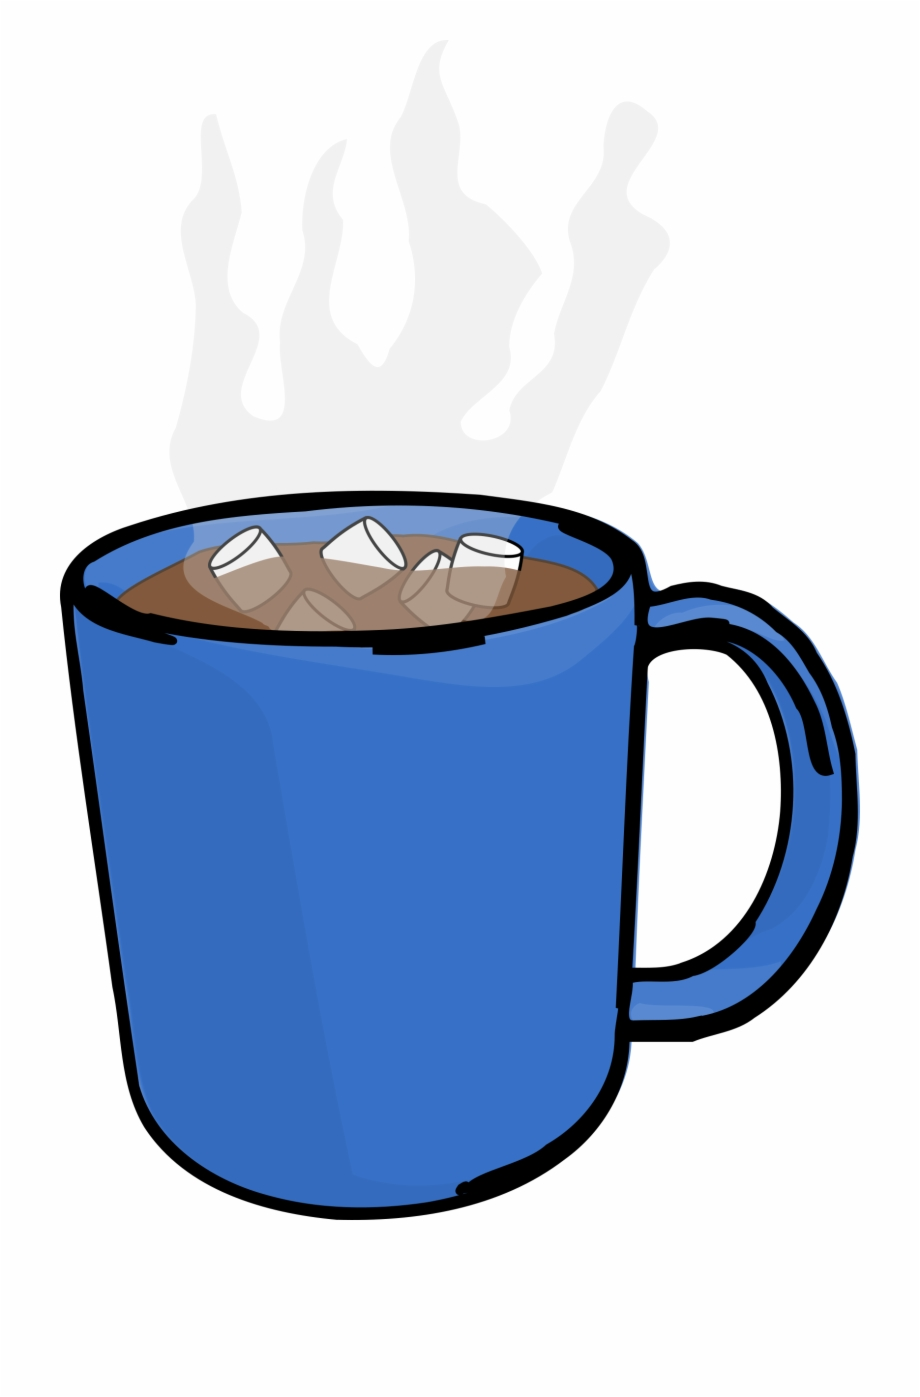 Cup of hot cocoa clipart clipart freeuse Hot Chocolate Mug Png - Hot Chocolate Mug Clipart ... clipart freeuse